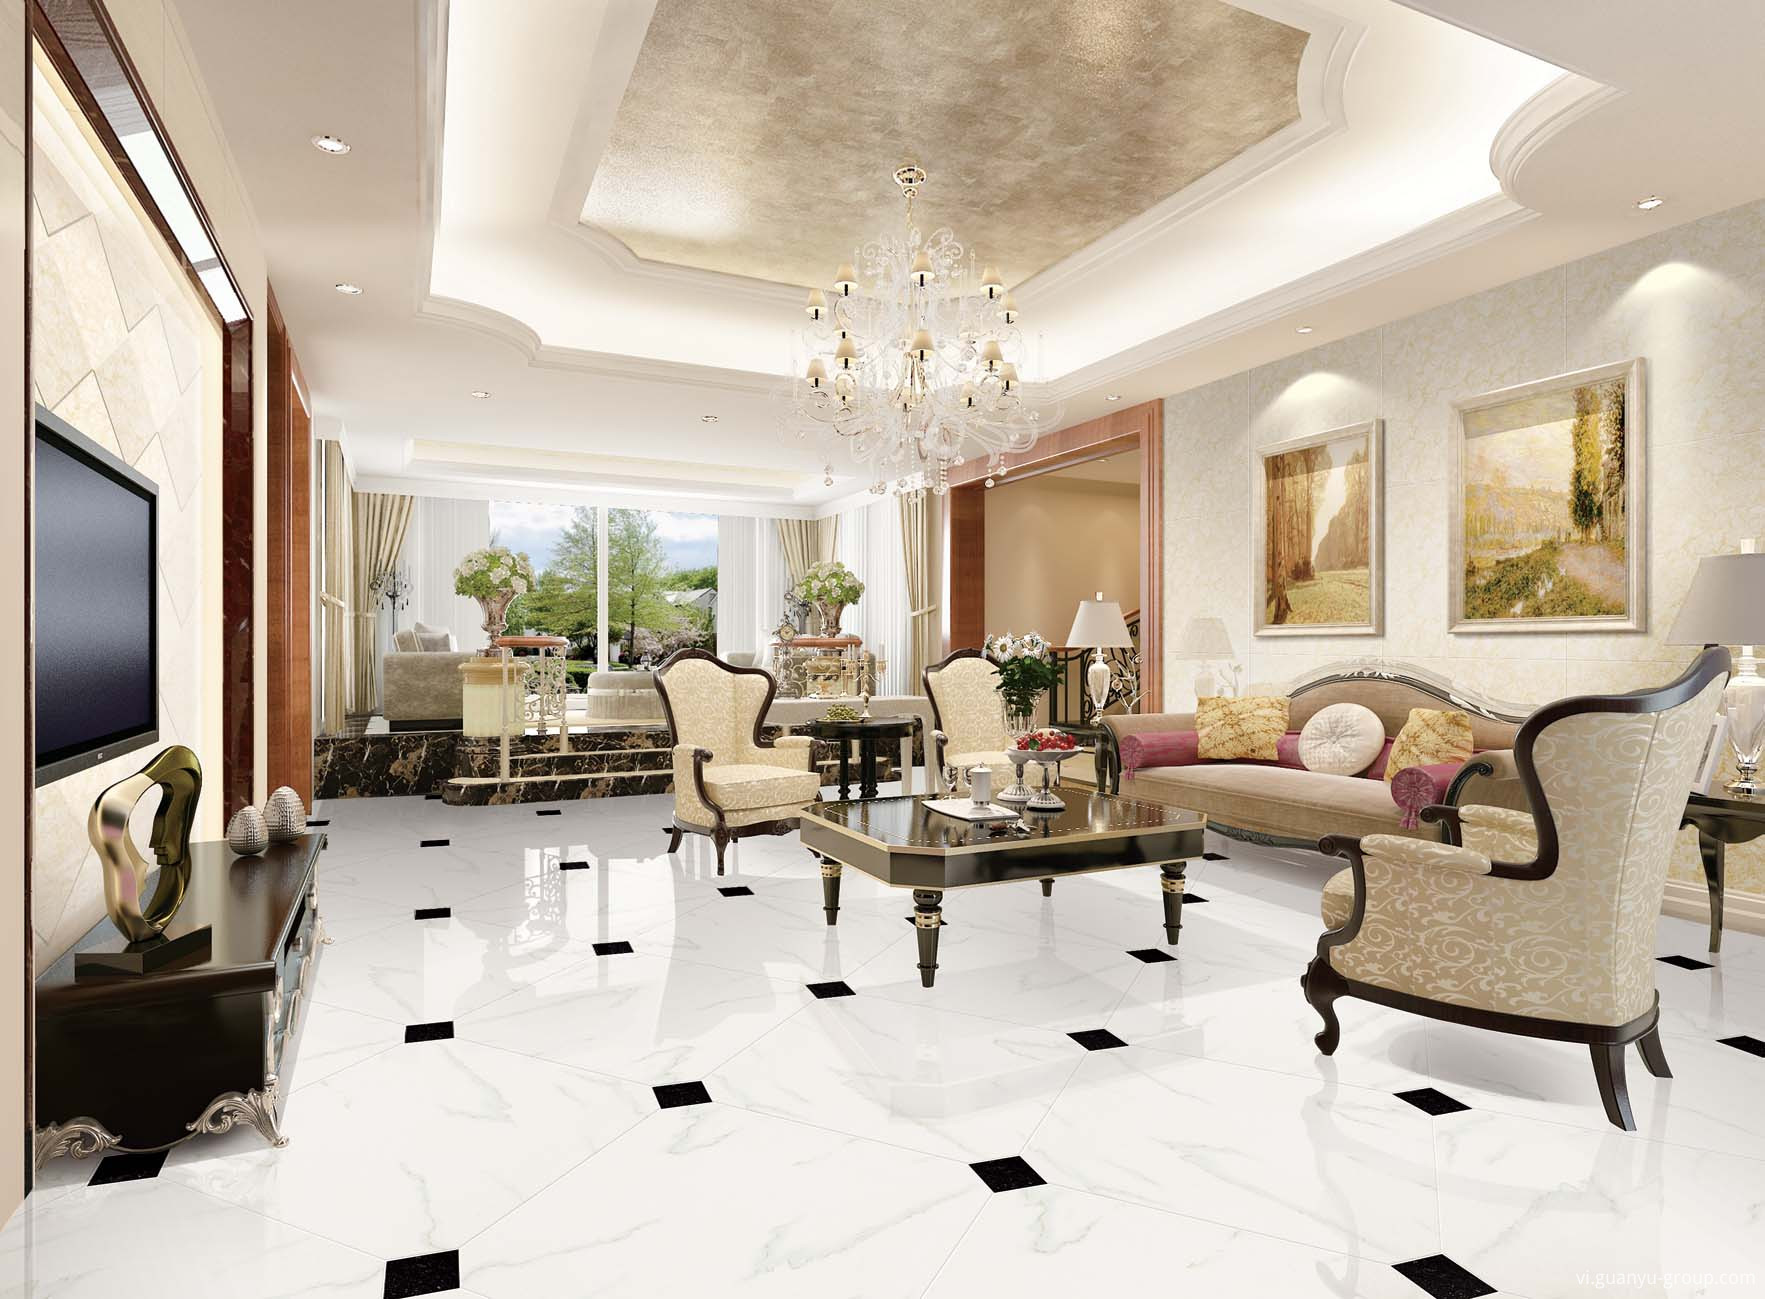 Super White Polished Porcelain Tile